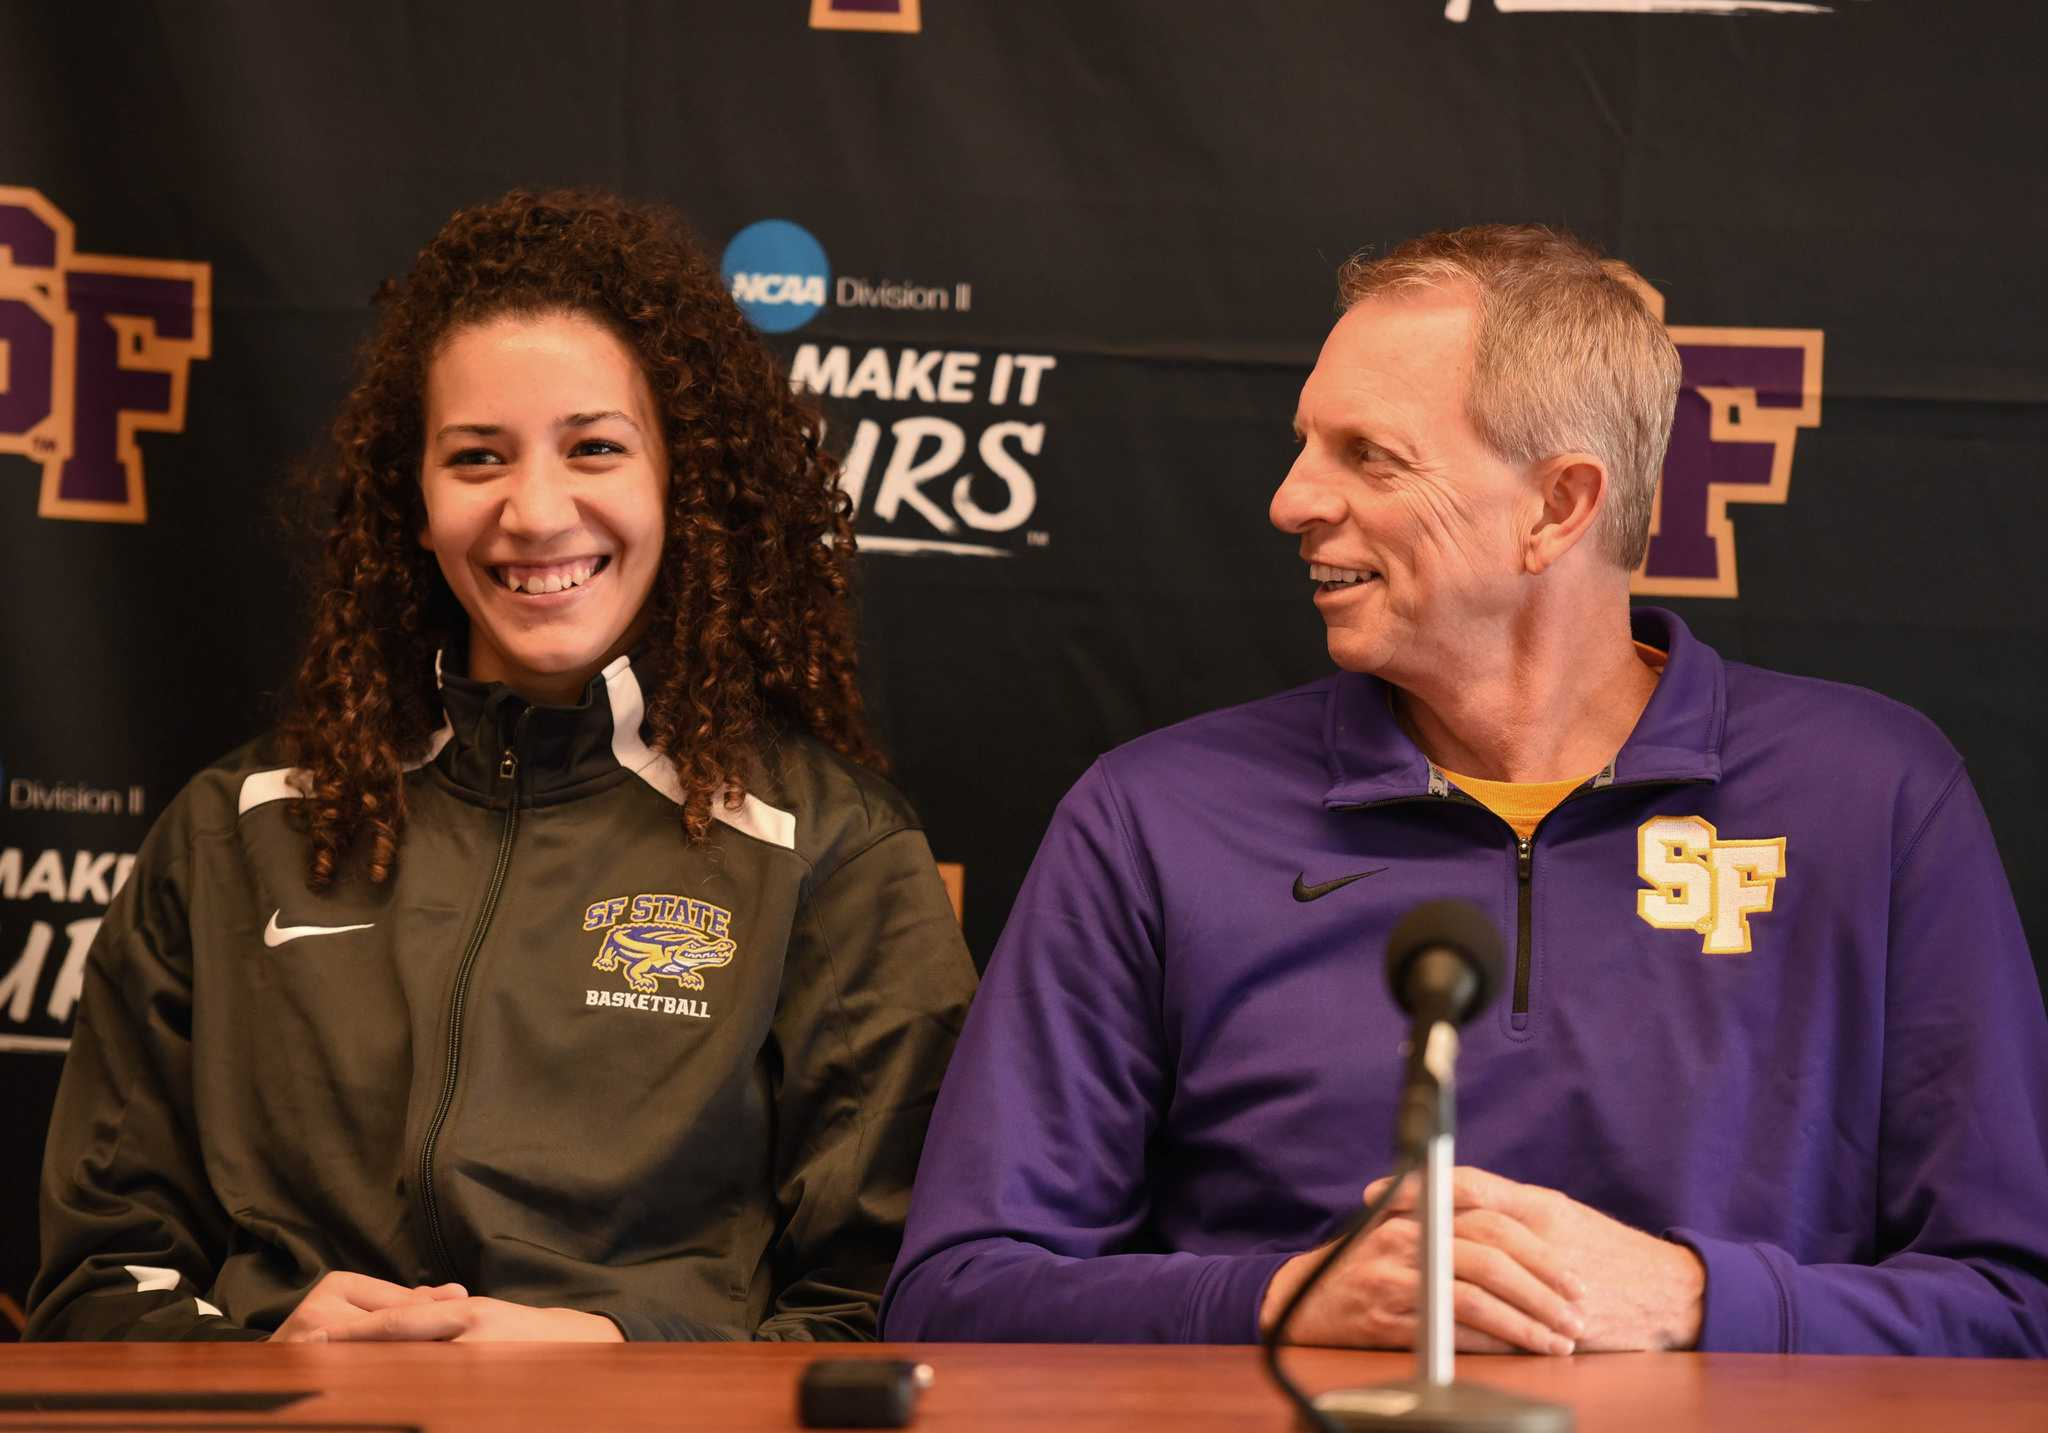 SF State Gators women's basketball player Laura Lawson (left) and head coach Dennis Cox smile as they field questions in the press room of the Gymnasium building Wednesday, Oct. 28. (David Henry / Xpress)